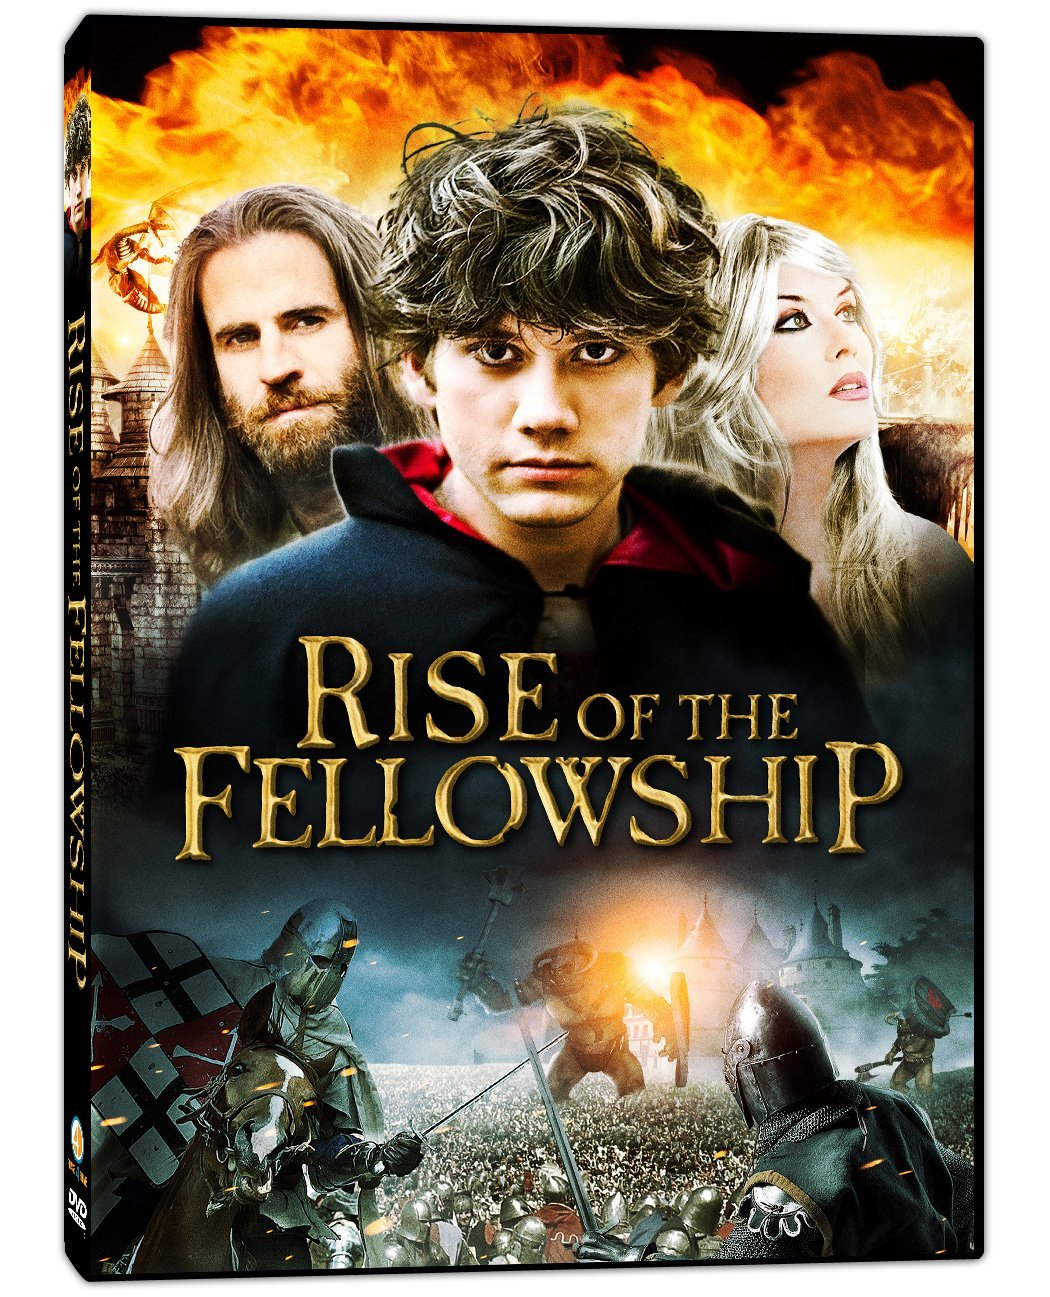 Rings Comedy Film 'Rise Of The Fellowship' Debuts On